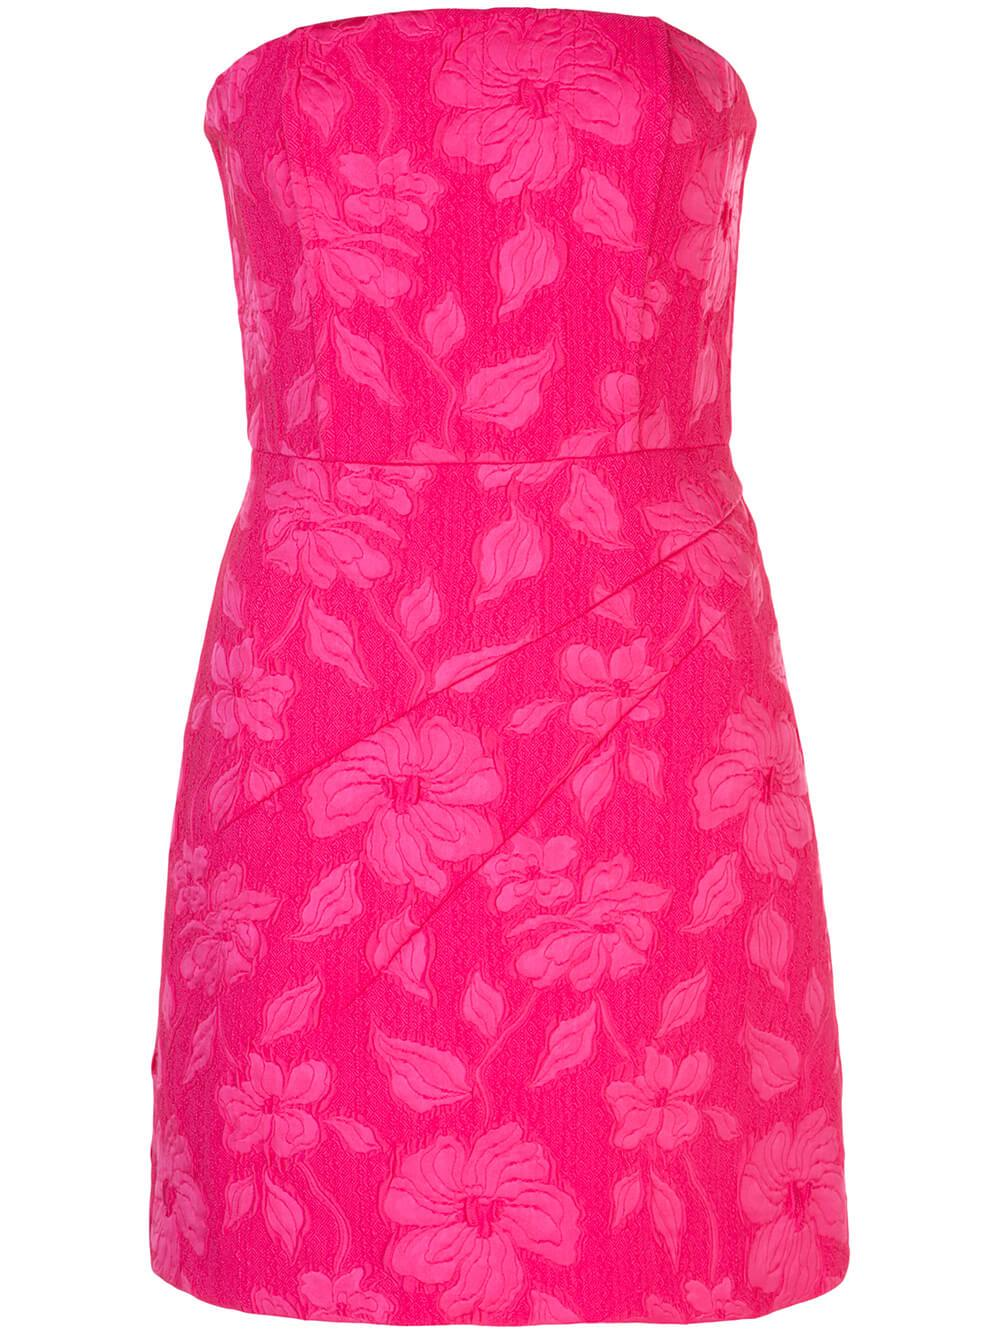 Perla Boned Strapless Jacquard Mini Dress Item # CC002Q06532